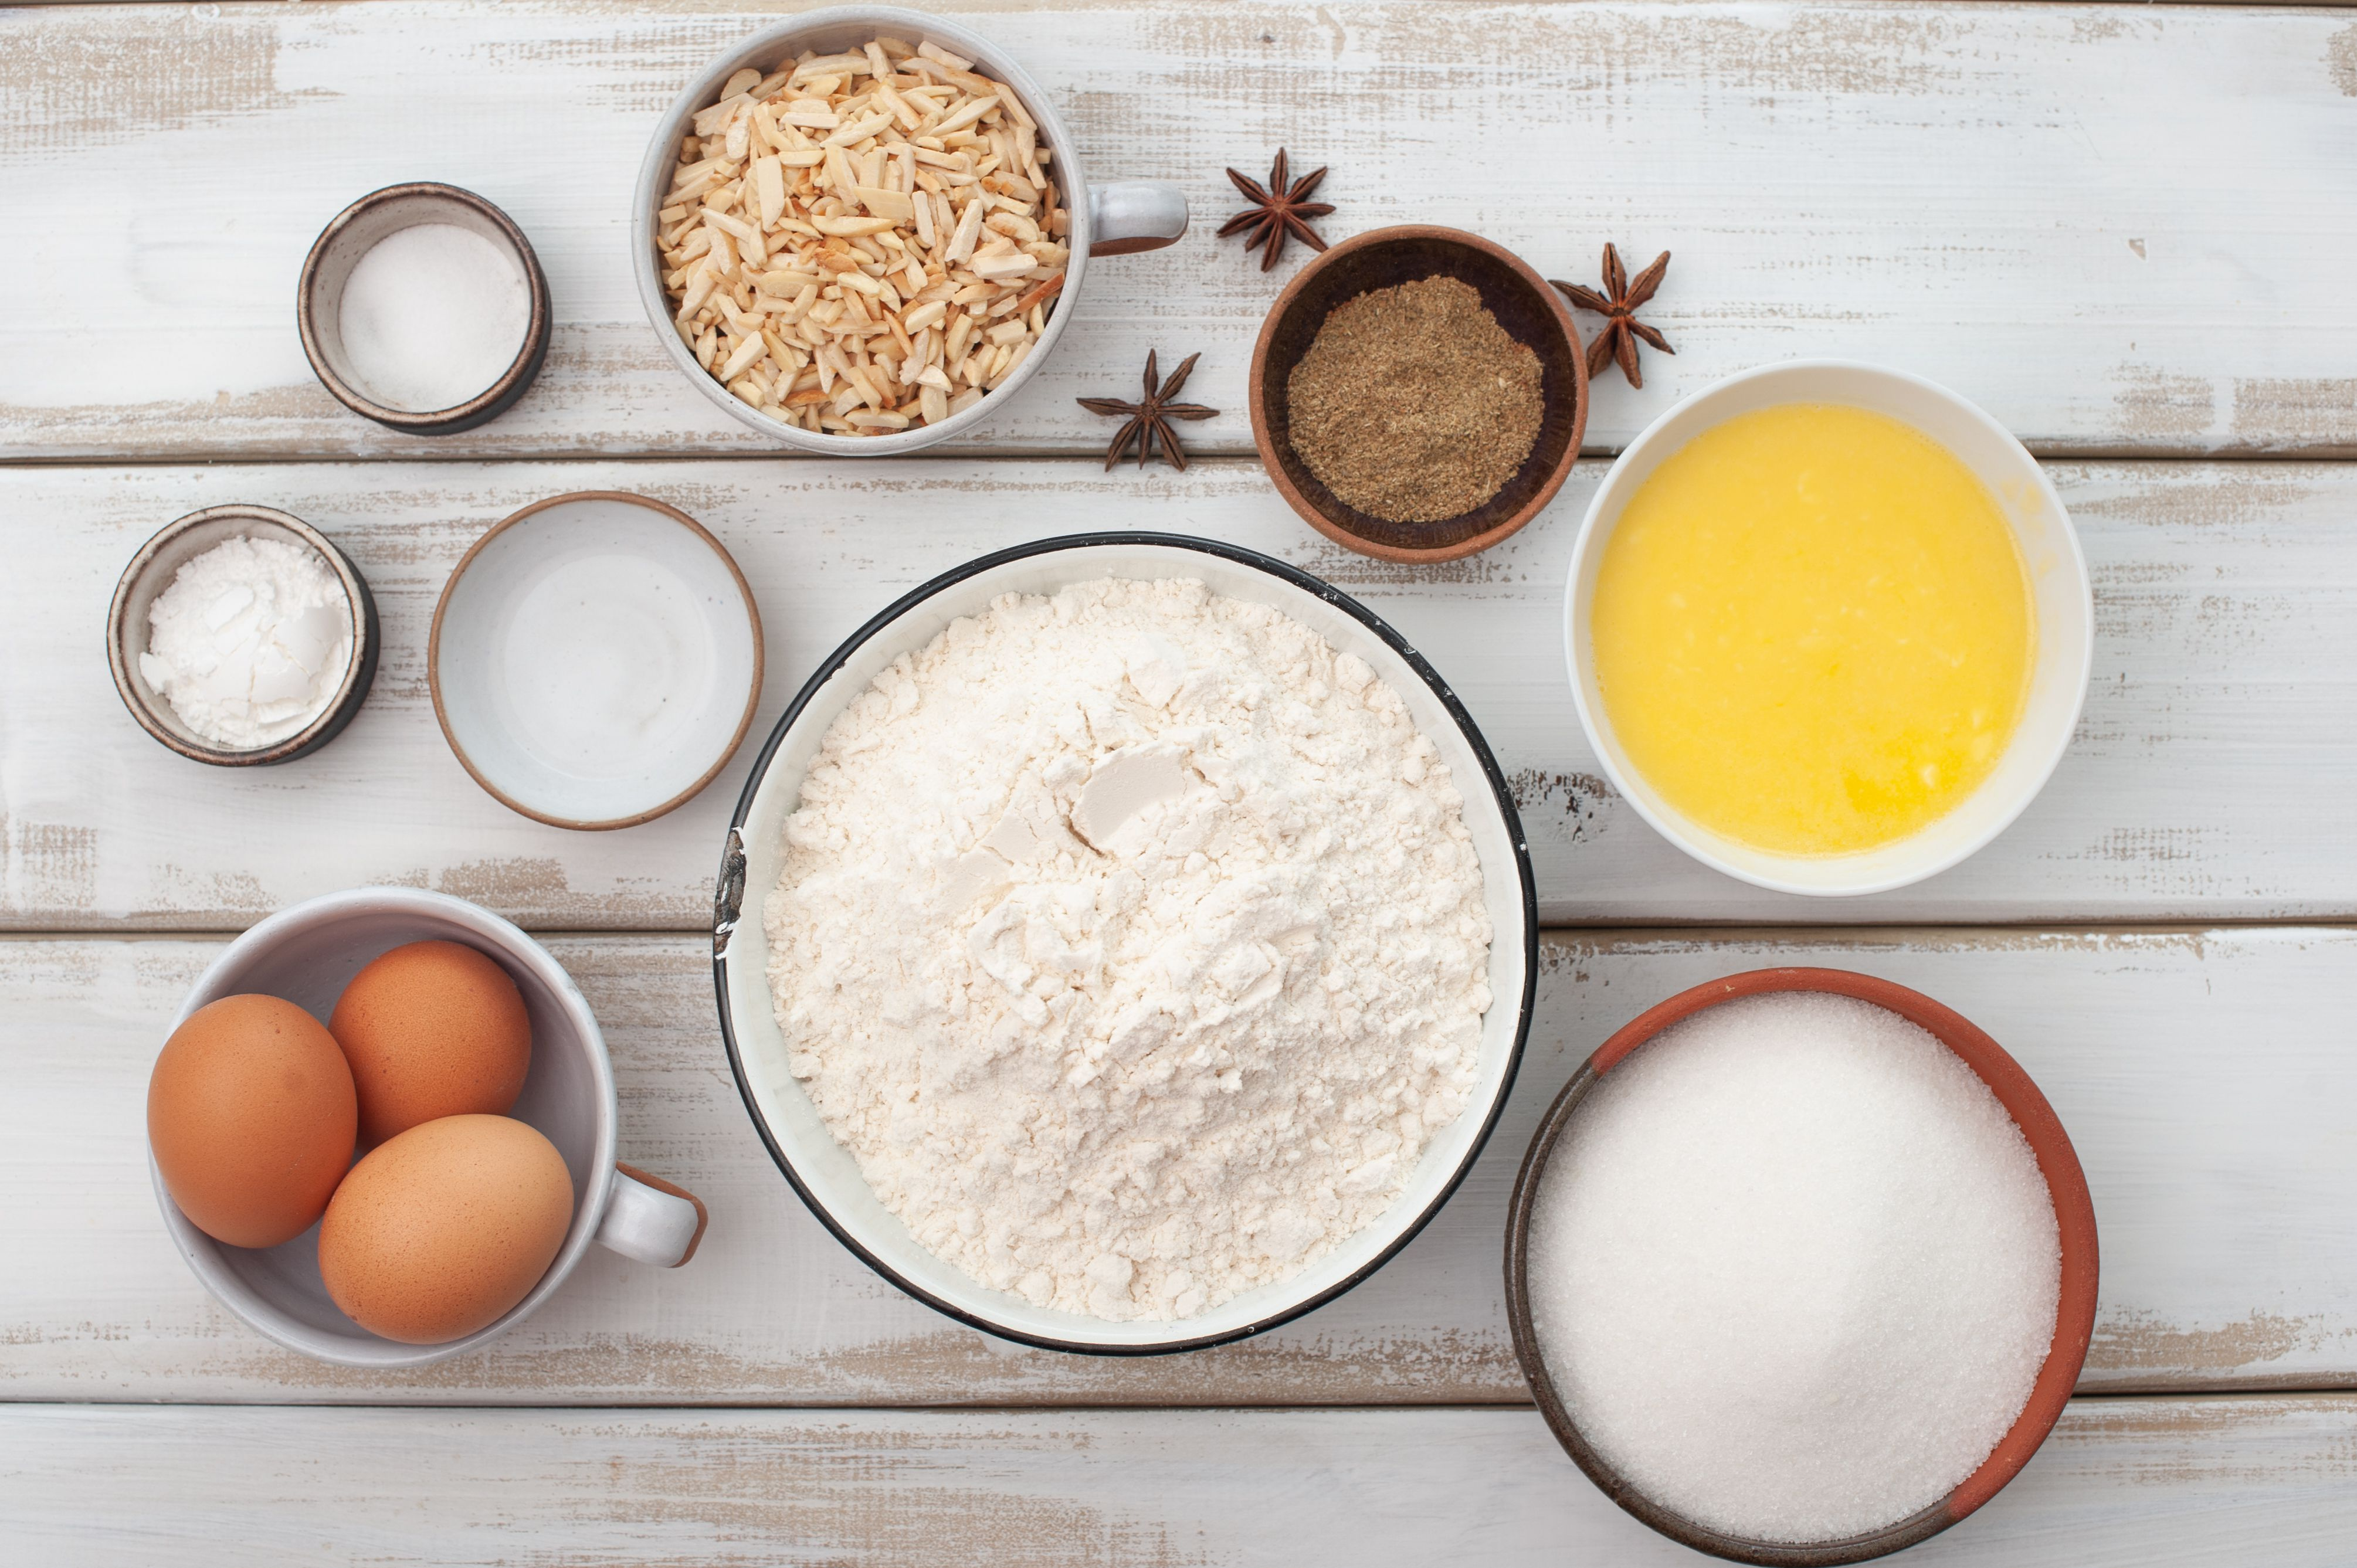 Ingredients for double anise biscotti